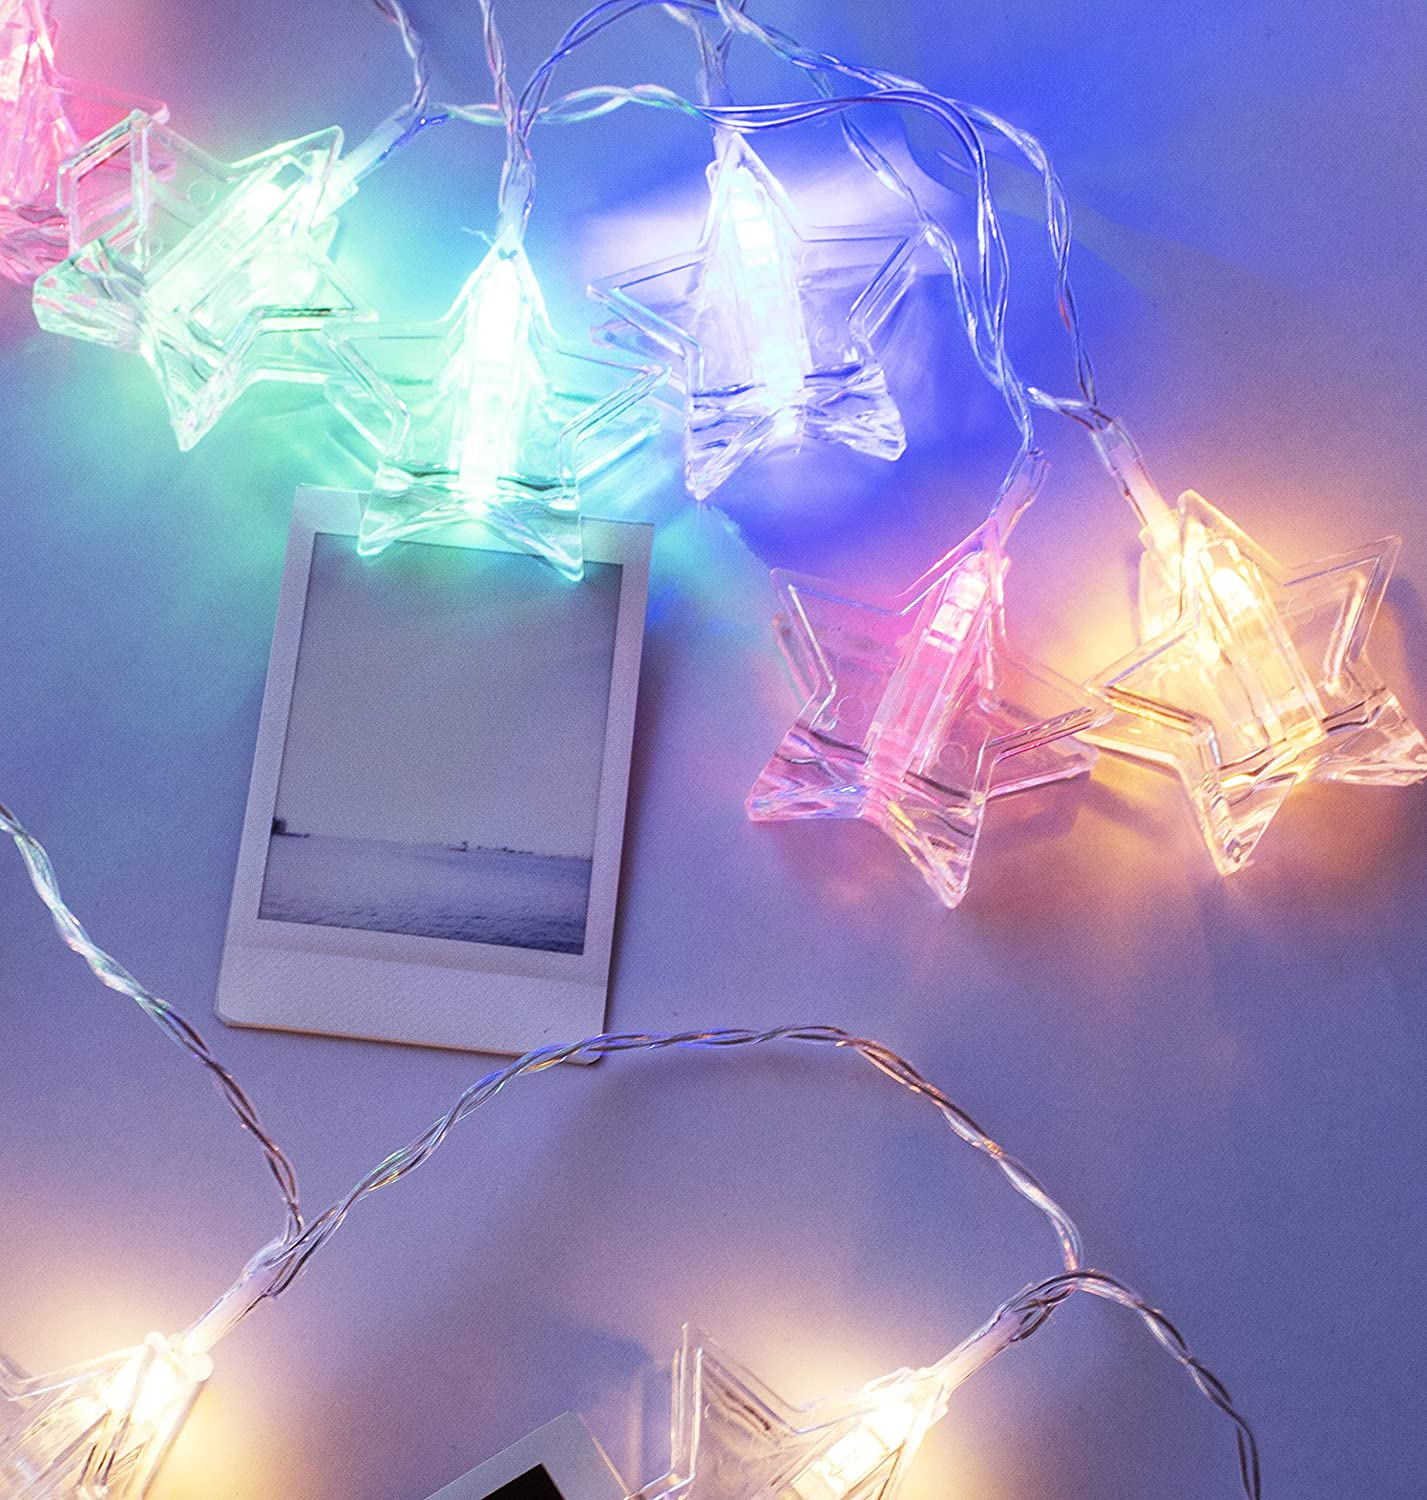 LuxLumi Star Nebula Photo Clip 20 LED String Lights for Hanging Pictures or Notes Apartment Bedroom Home College Dorm Decor Kids Teens Nursery 4th of July Summer (Multi 7.5FT)